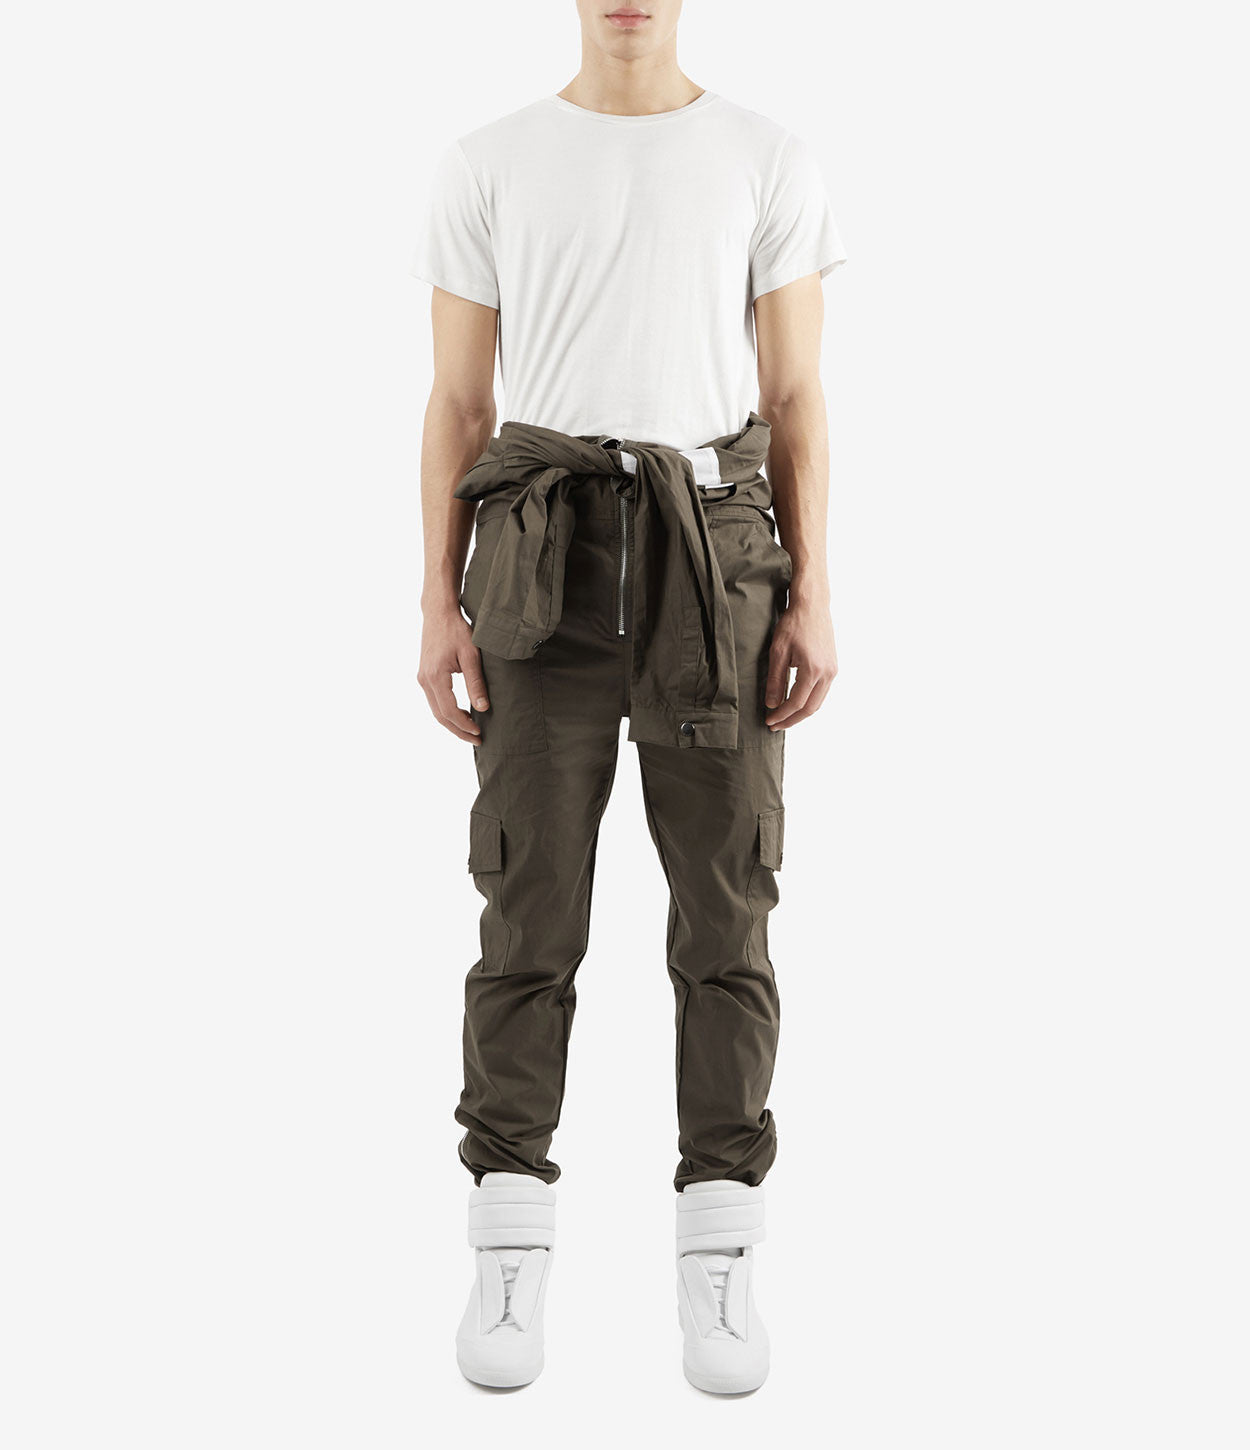 JS368 Boiler Suit - Khaki - underated london - underatedco - 3